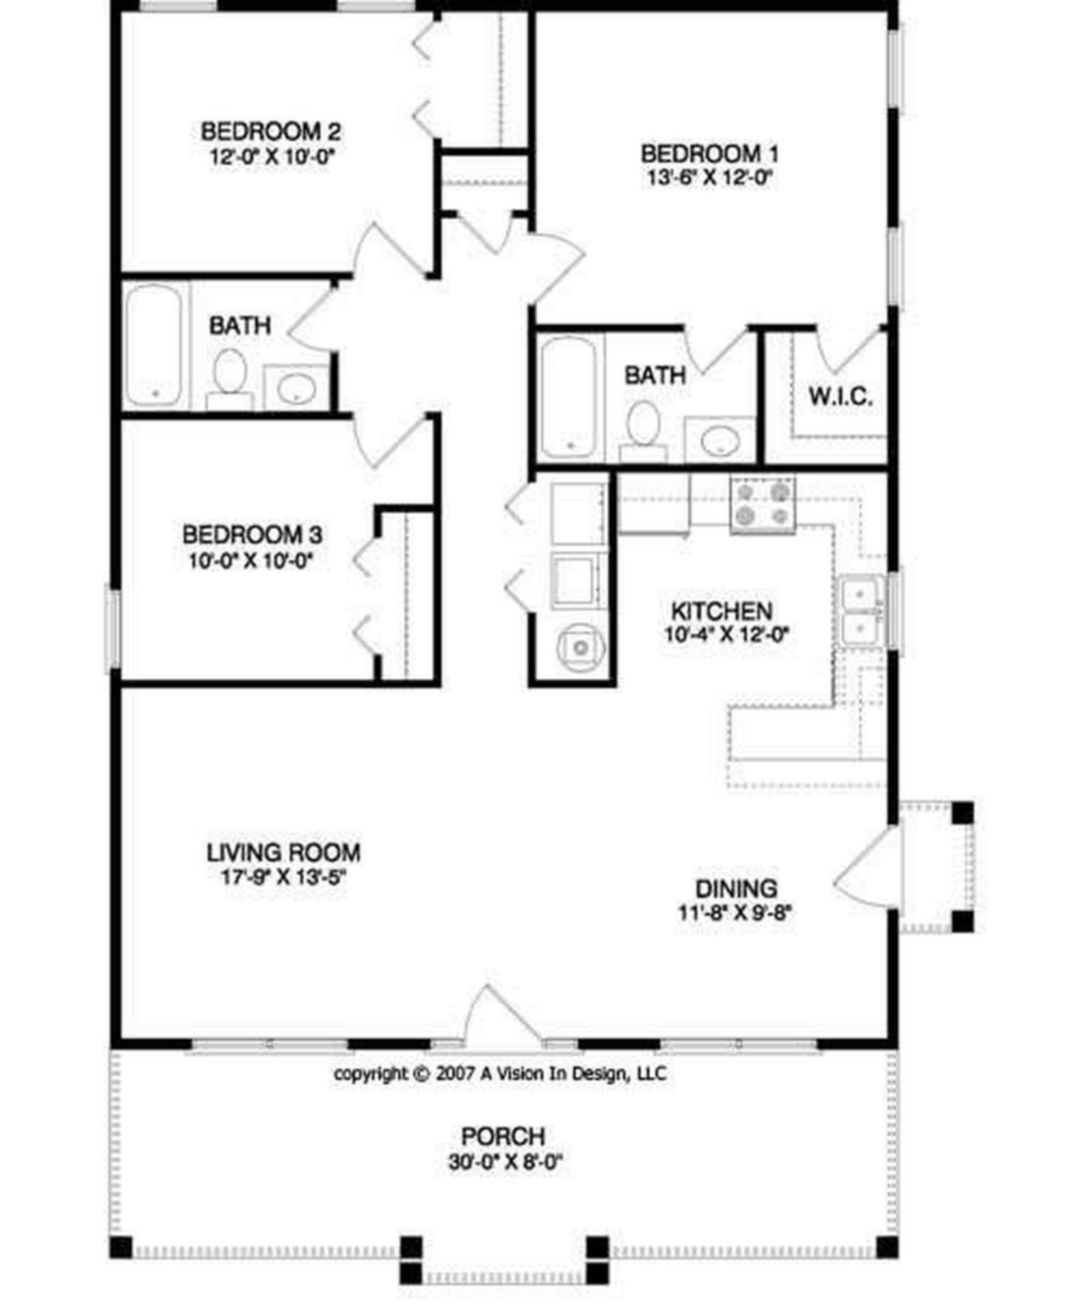 Epic Best 20 Easy Small Home Layout Collections For Inspiration Https Hroomy Com Building Archit Small House Floor Plans Floor Plans Ranch Garage House Plans